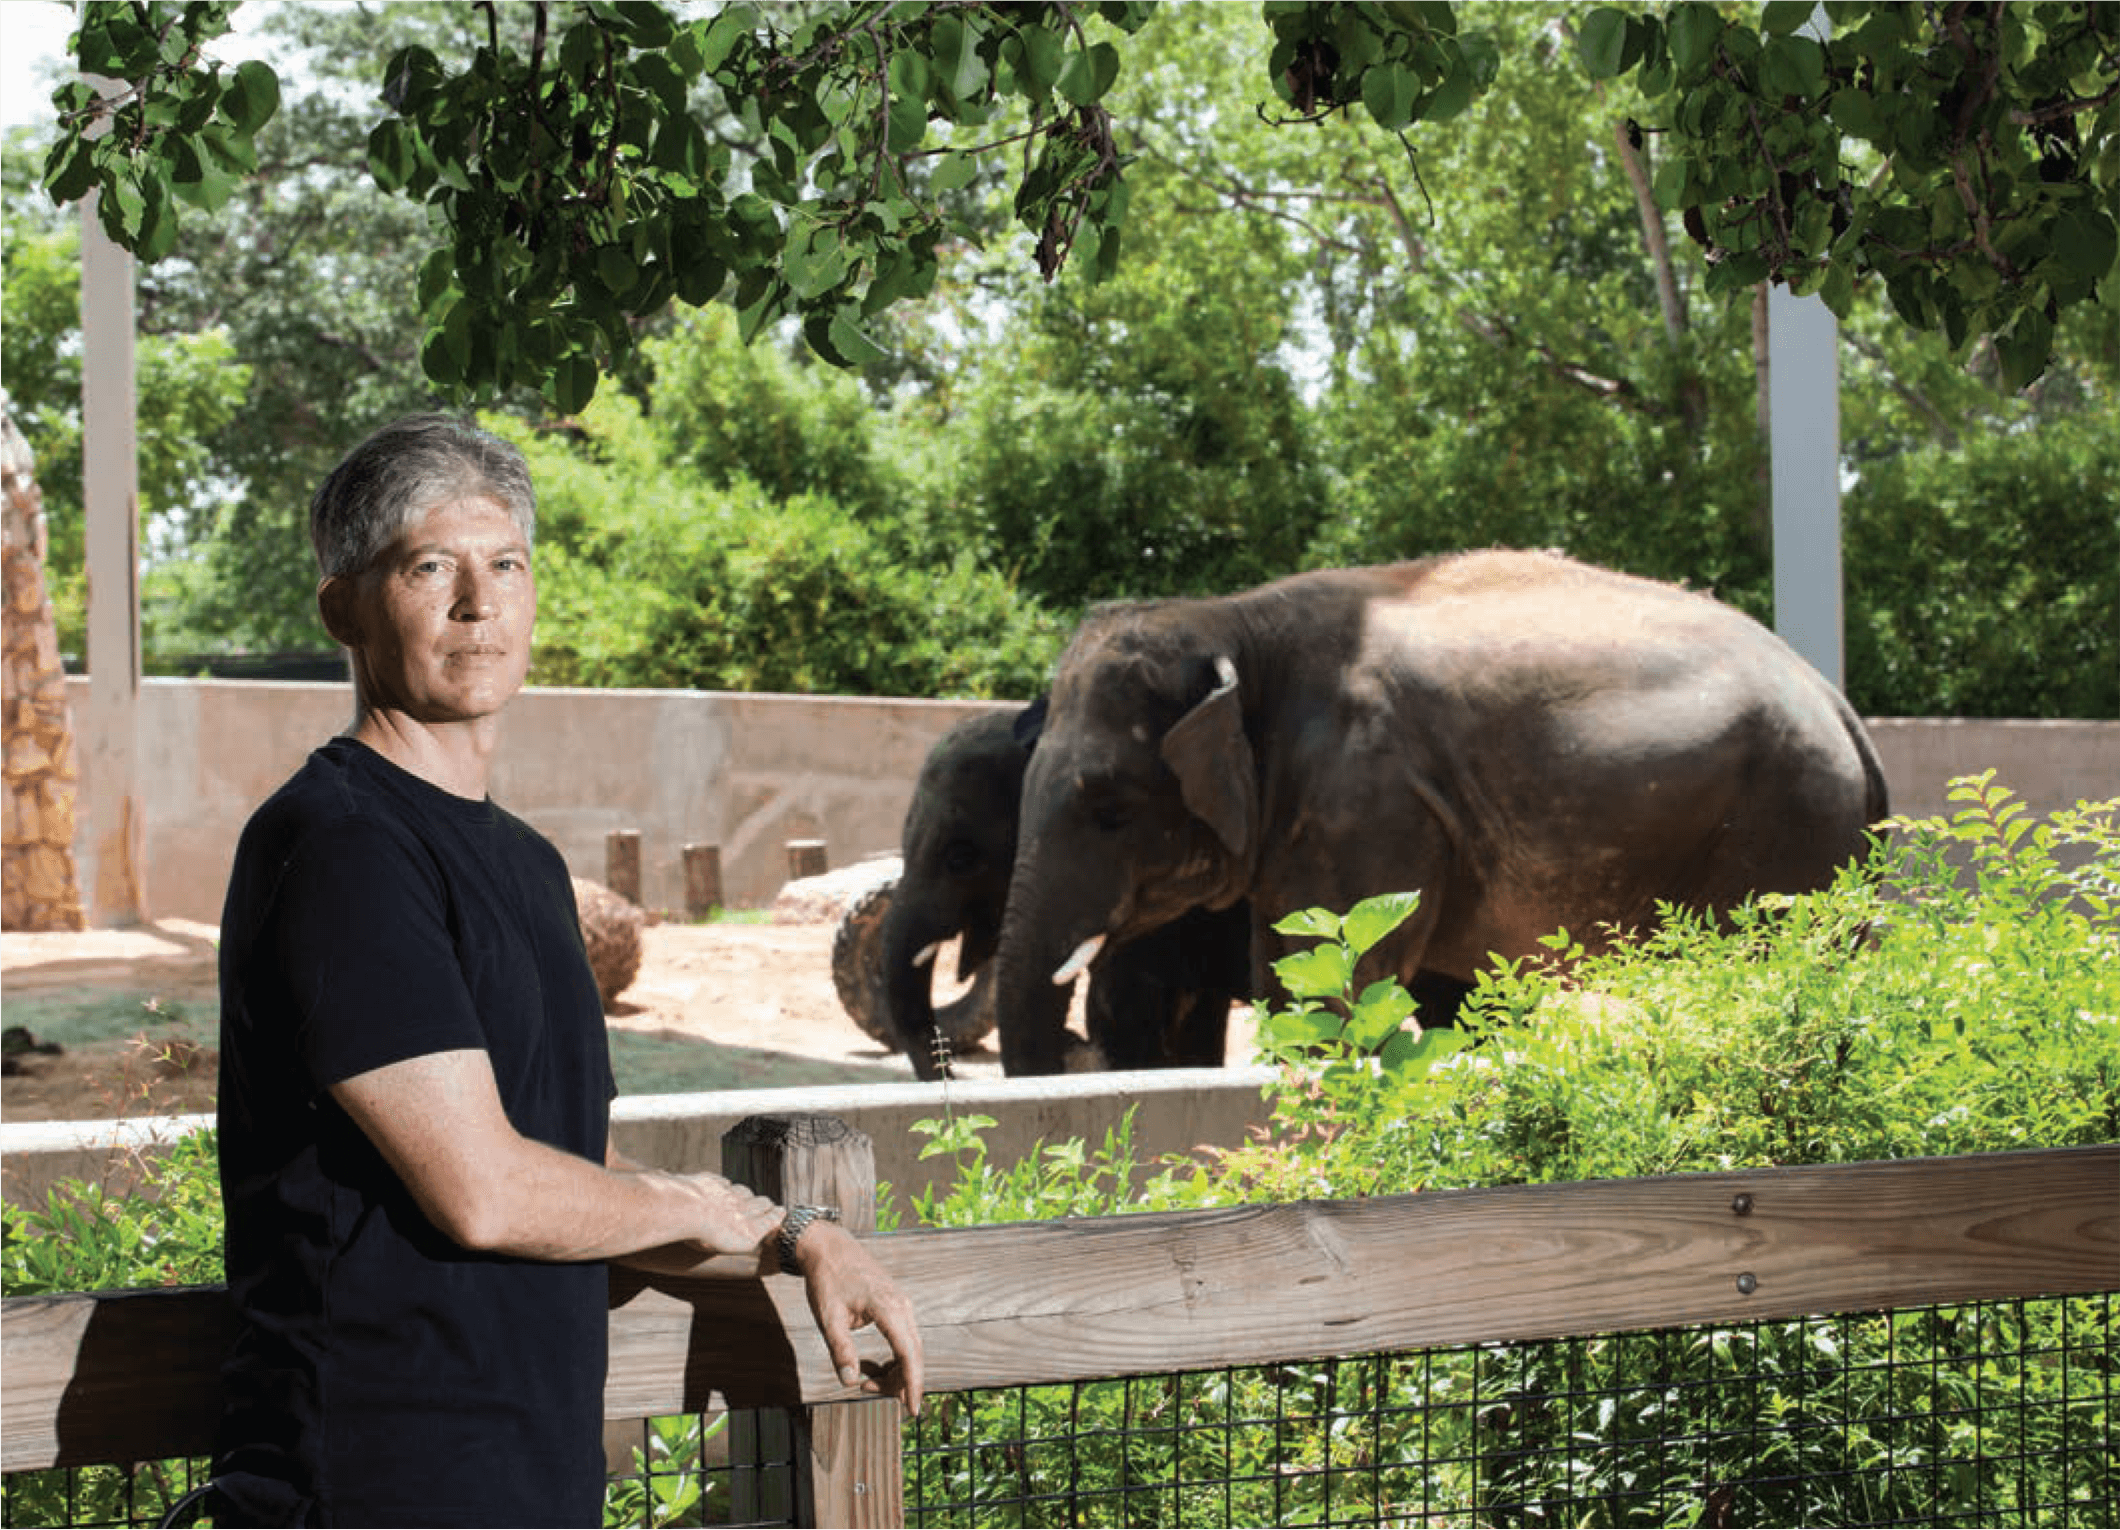 In honor of the research that Baylor College of Medicine's Paul Ling, Ph.d., has done with the Houston Zoo, the zoo named one of its baby elephants Baylor.